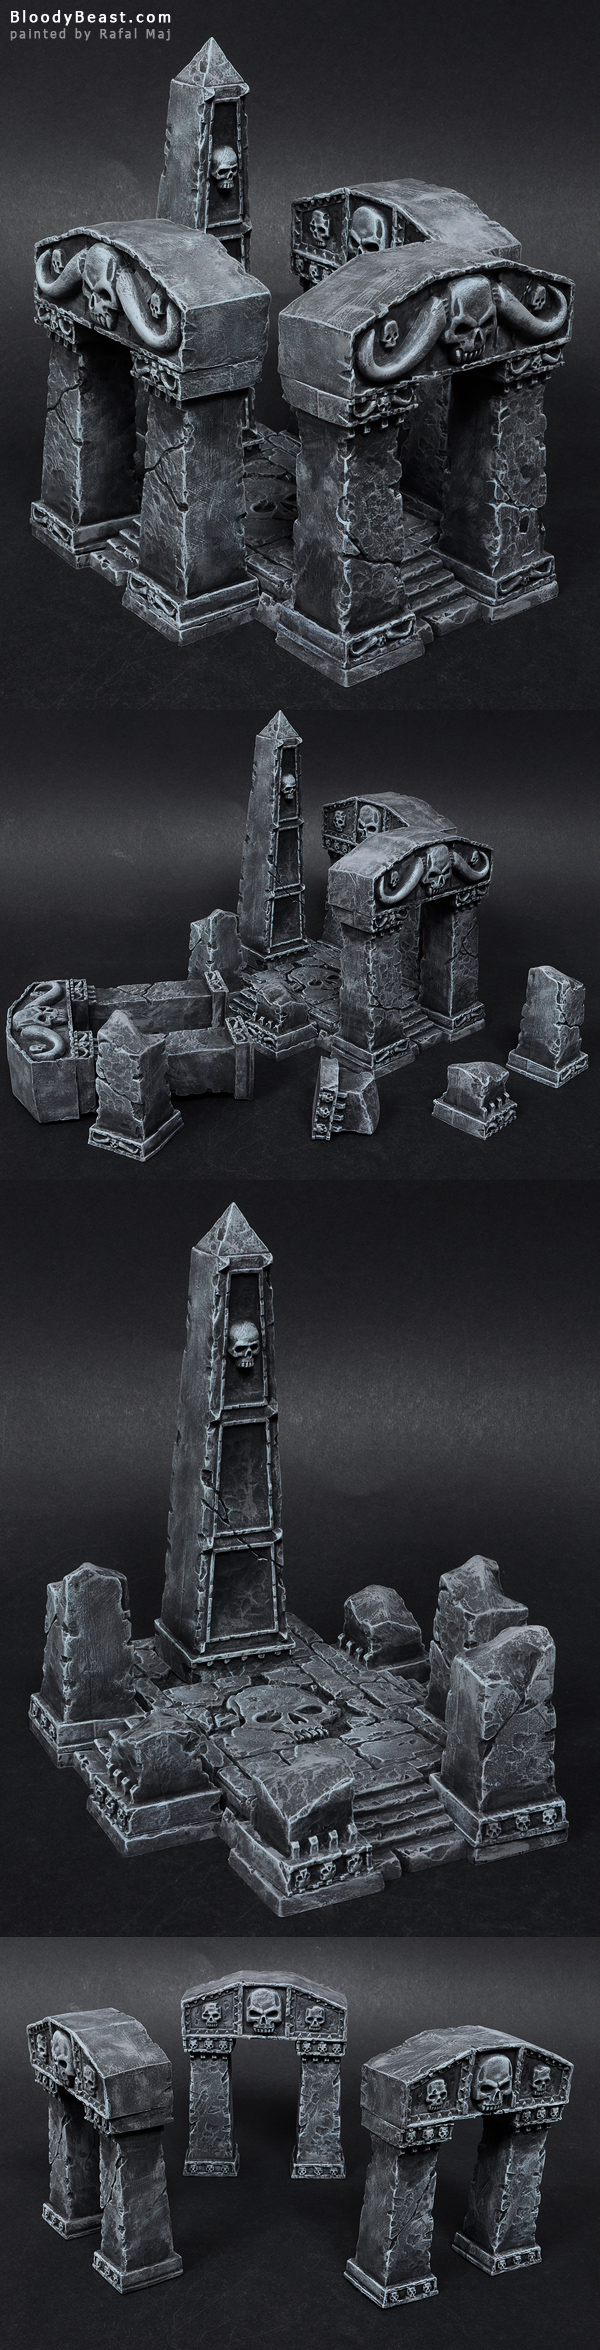 Arcane Ruins painted by Rafal Maj (BloodyBeast.com)